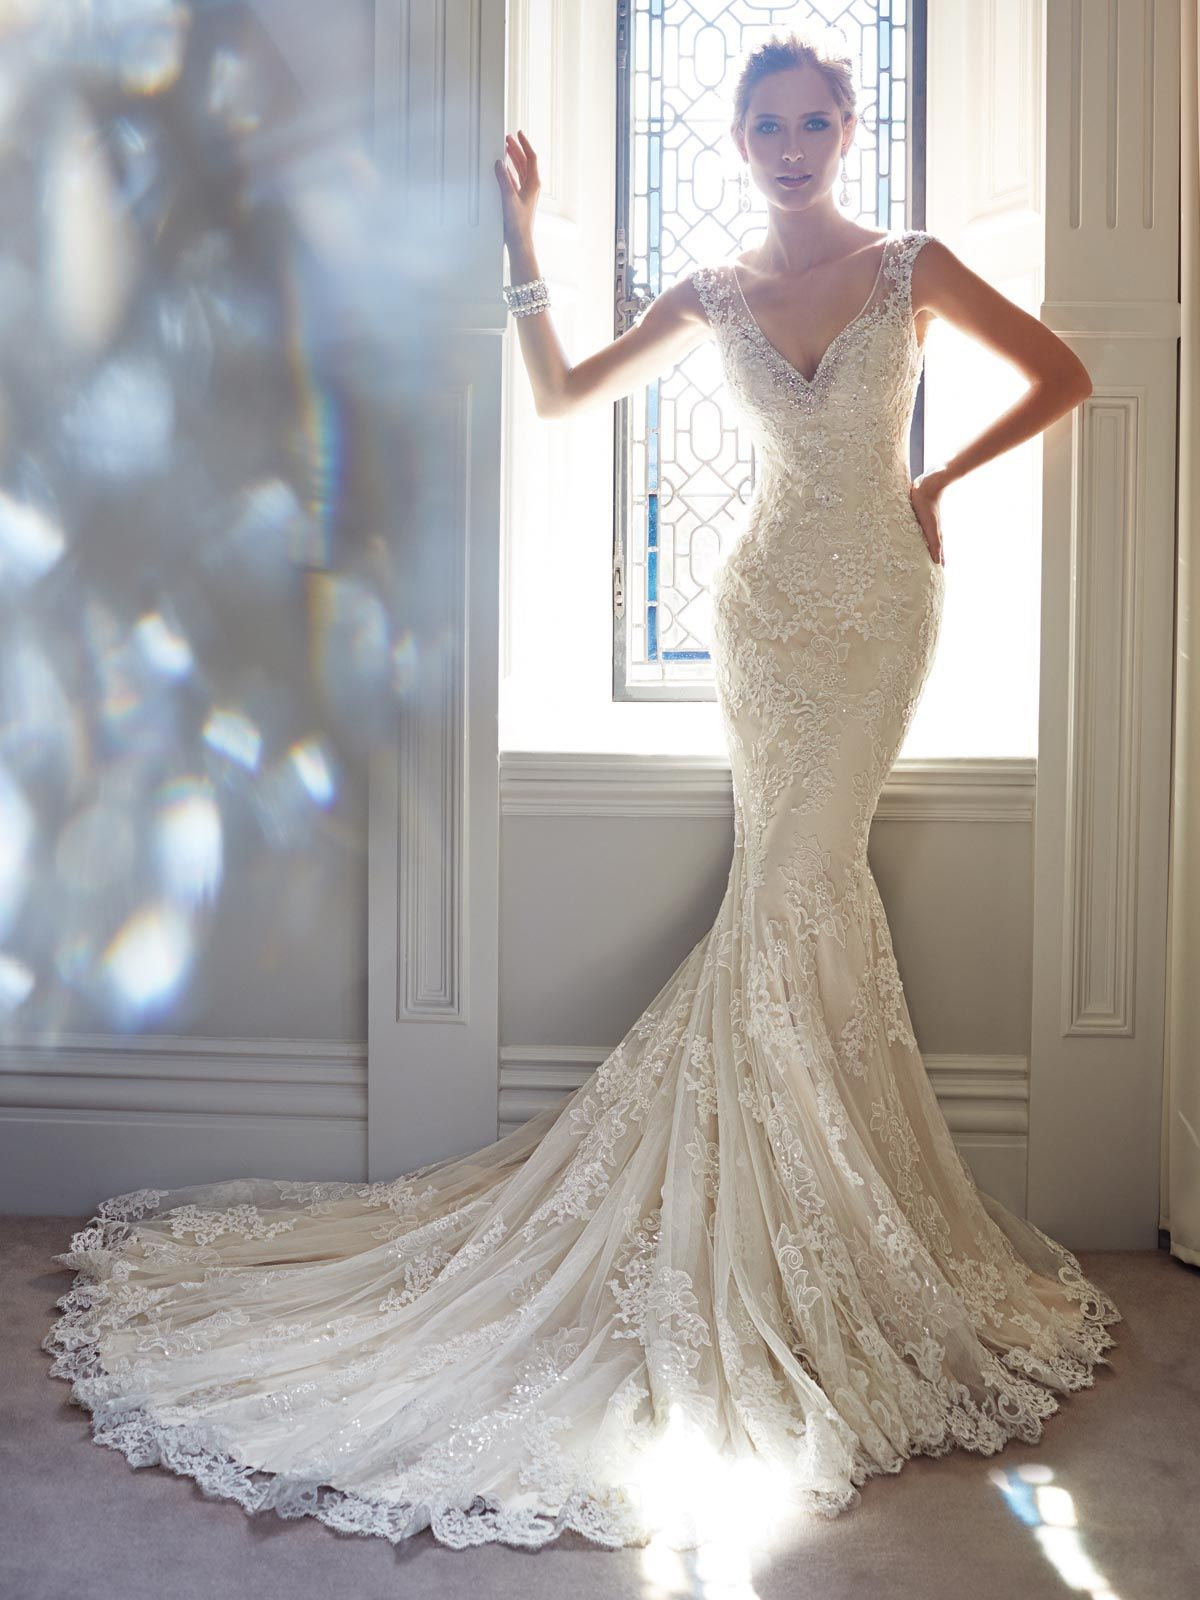 Austin Texas Bridal Formal Wedding Dresses Wedding Dresses 2014 Bridal Dresses